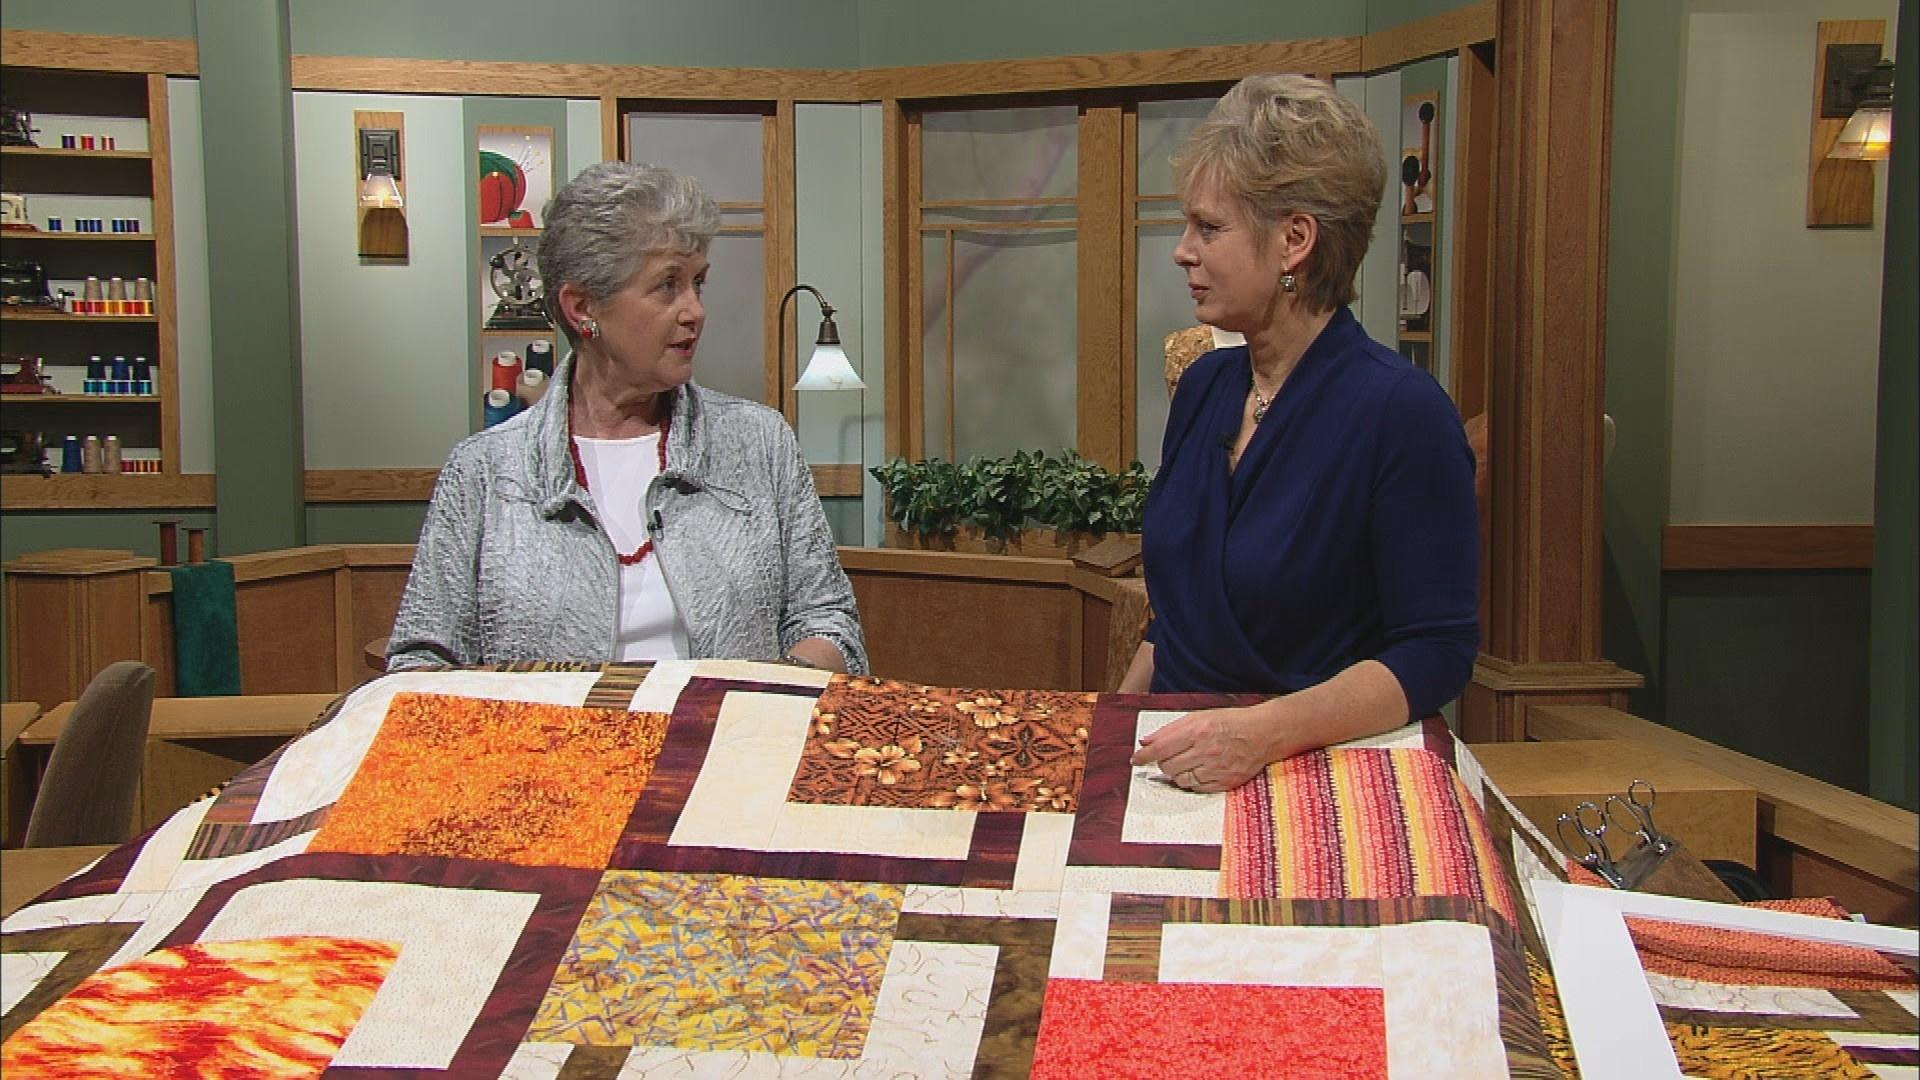 Video sew big quilt blocks part 1 watch sewing with nancy video sew big quilt blocks part 1 watch sewing with nancy online wisconsin public television video jeuxipadfo Image collections